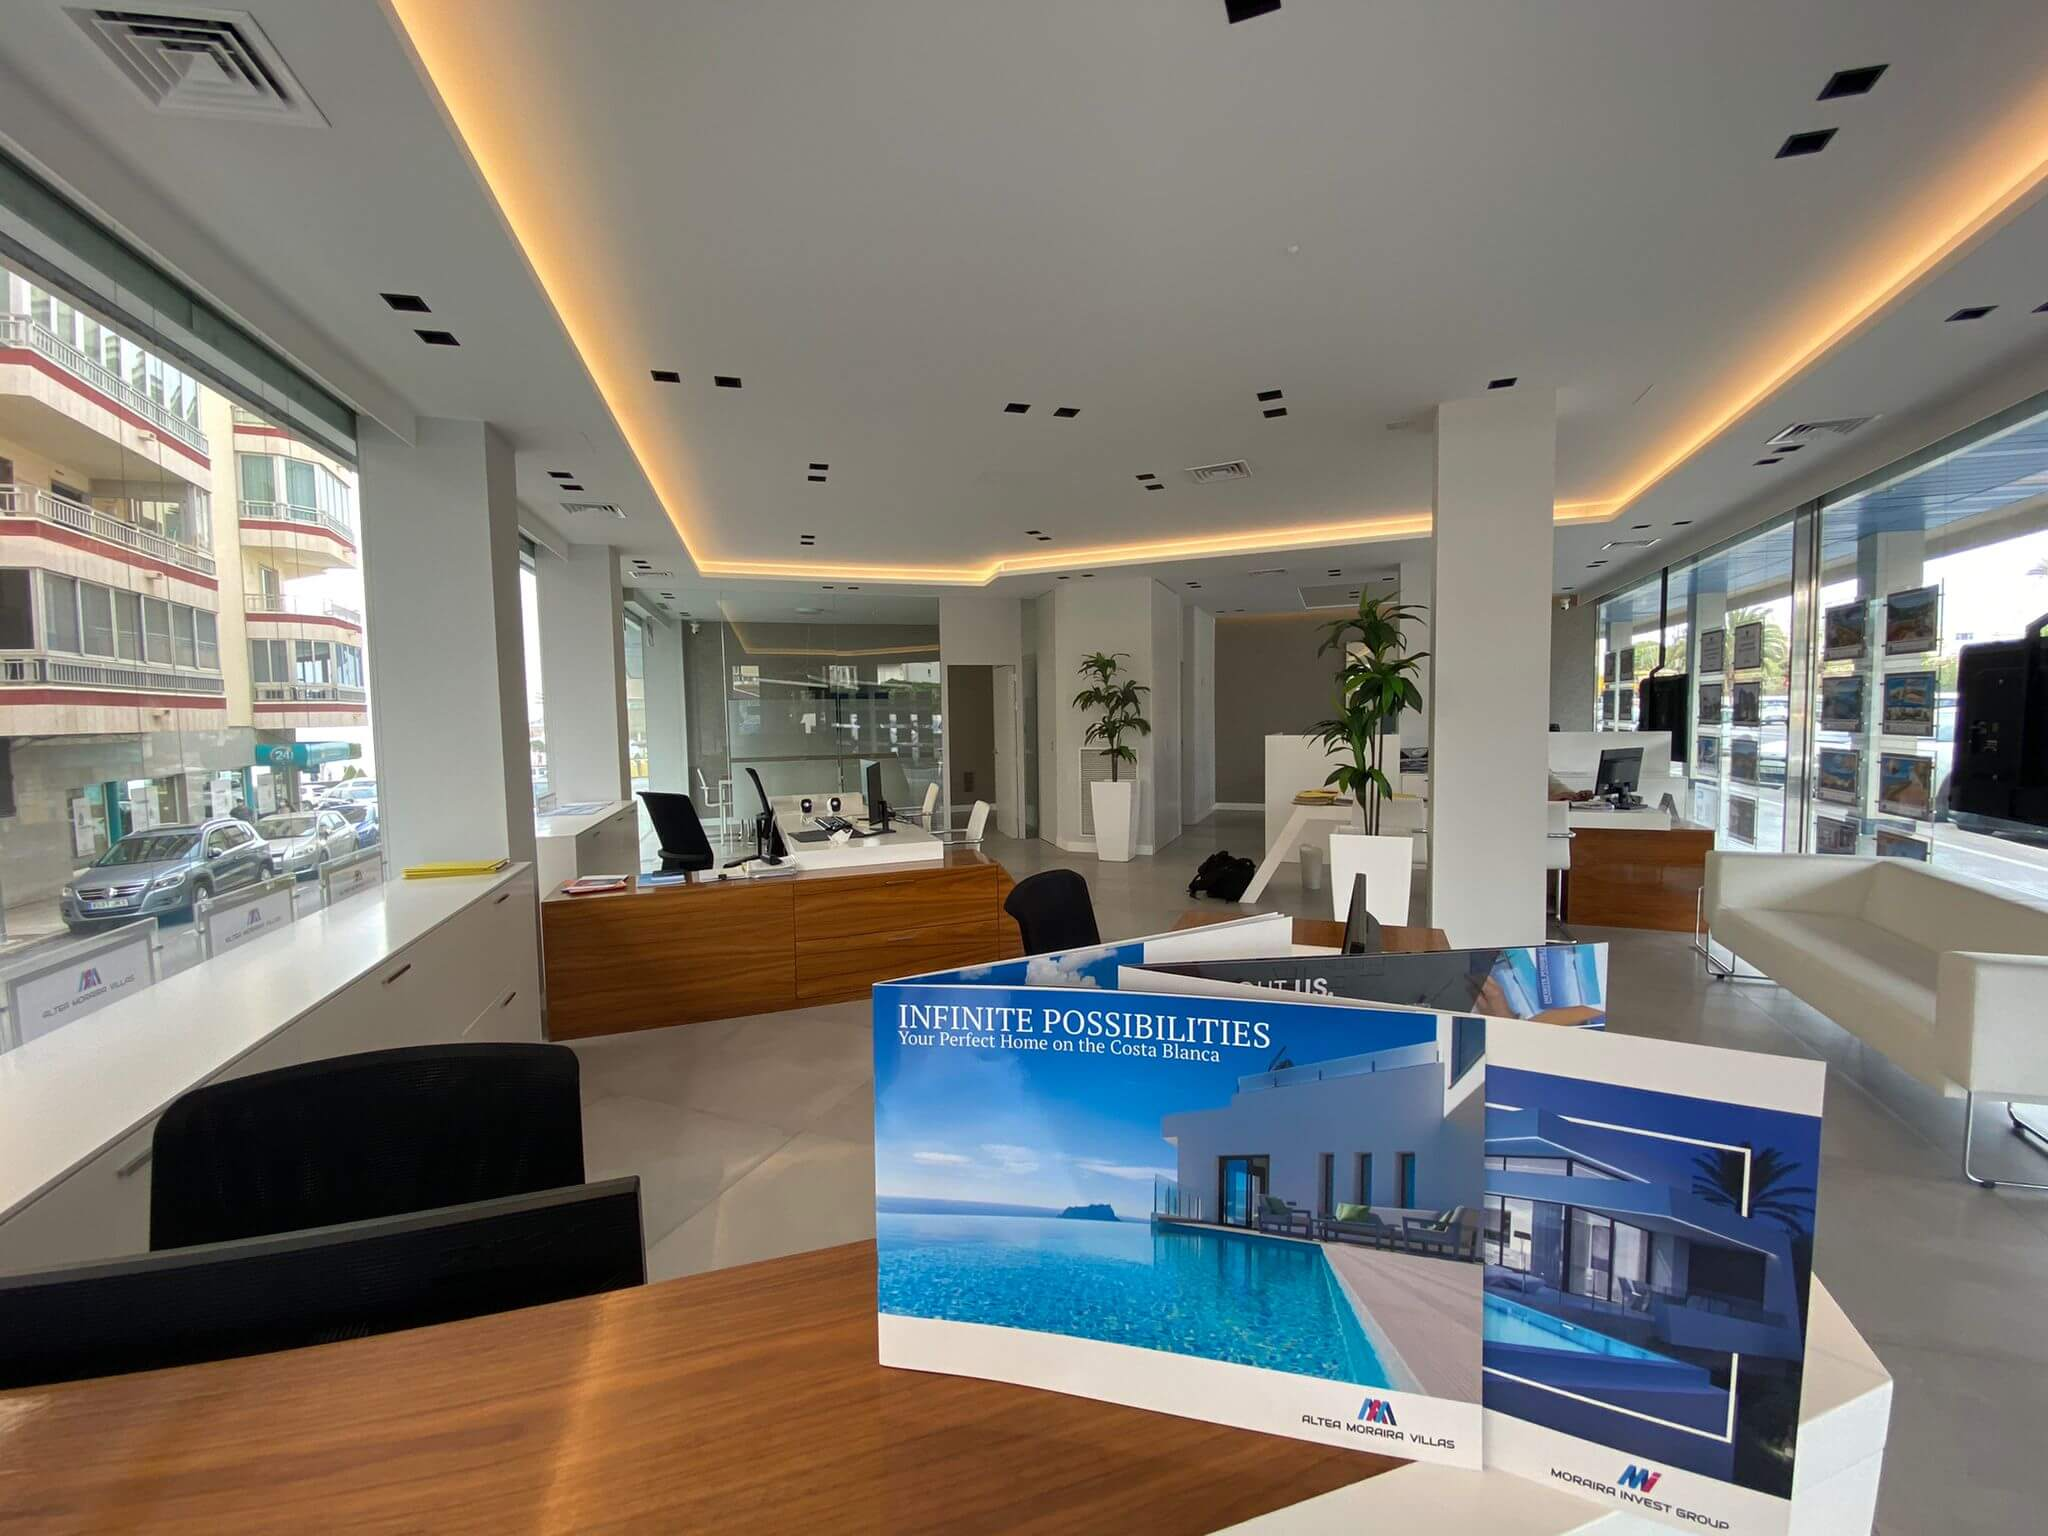 Interior Office photo real estate agents in Altea